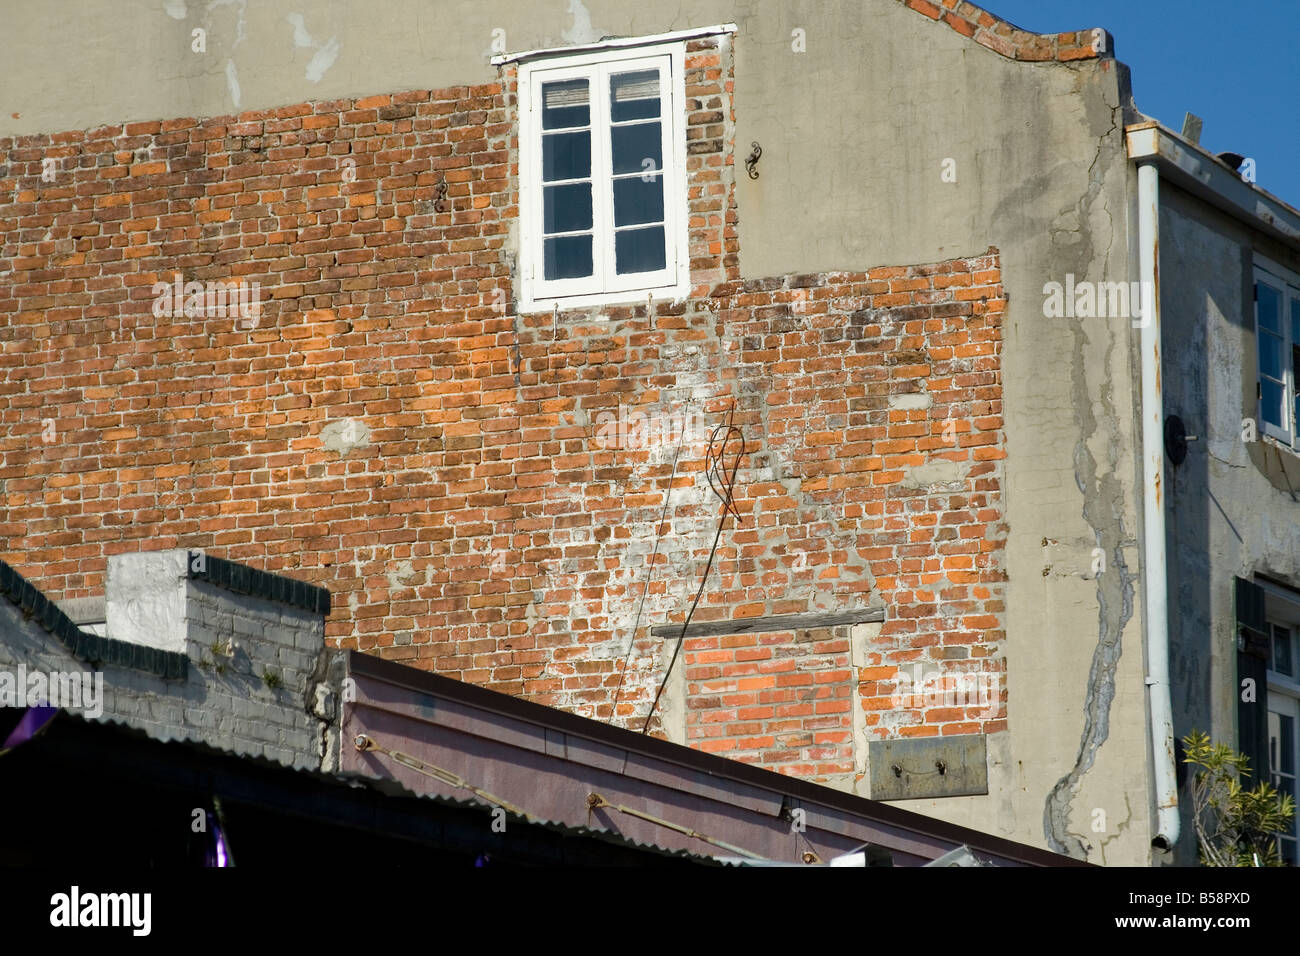 Window in a brick wall of a residential structure Stock Photo